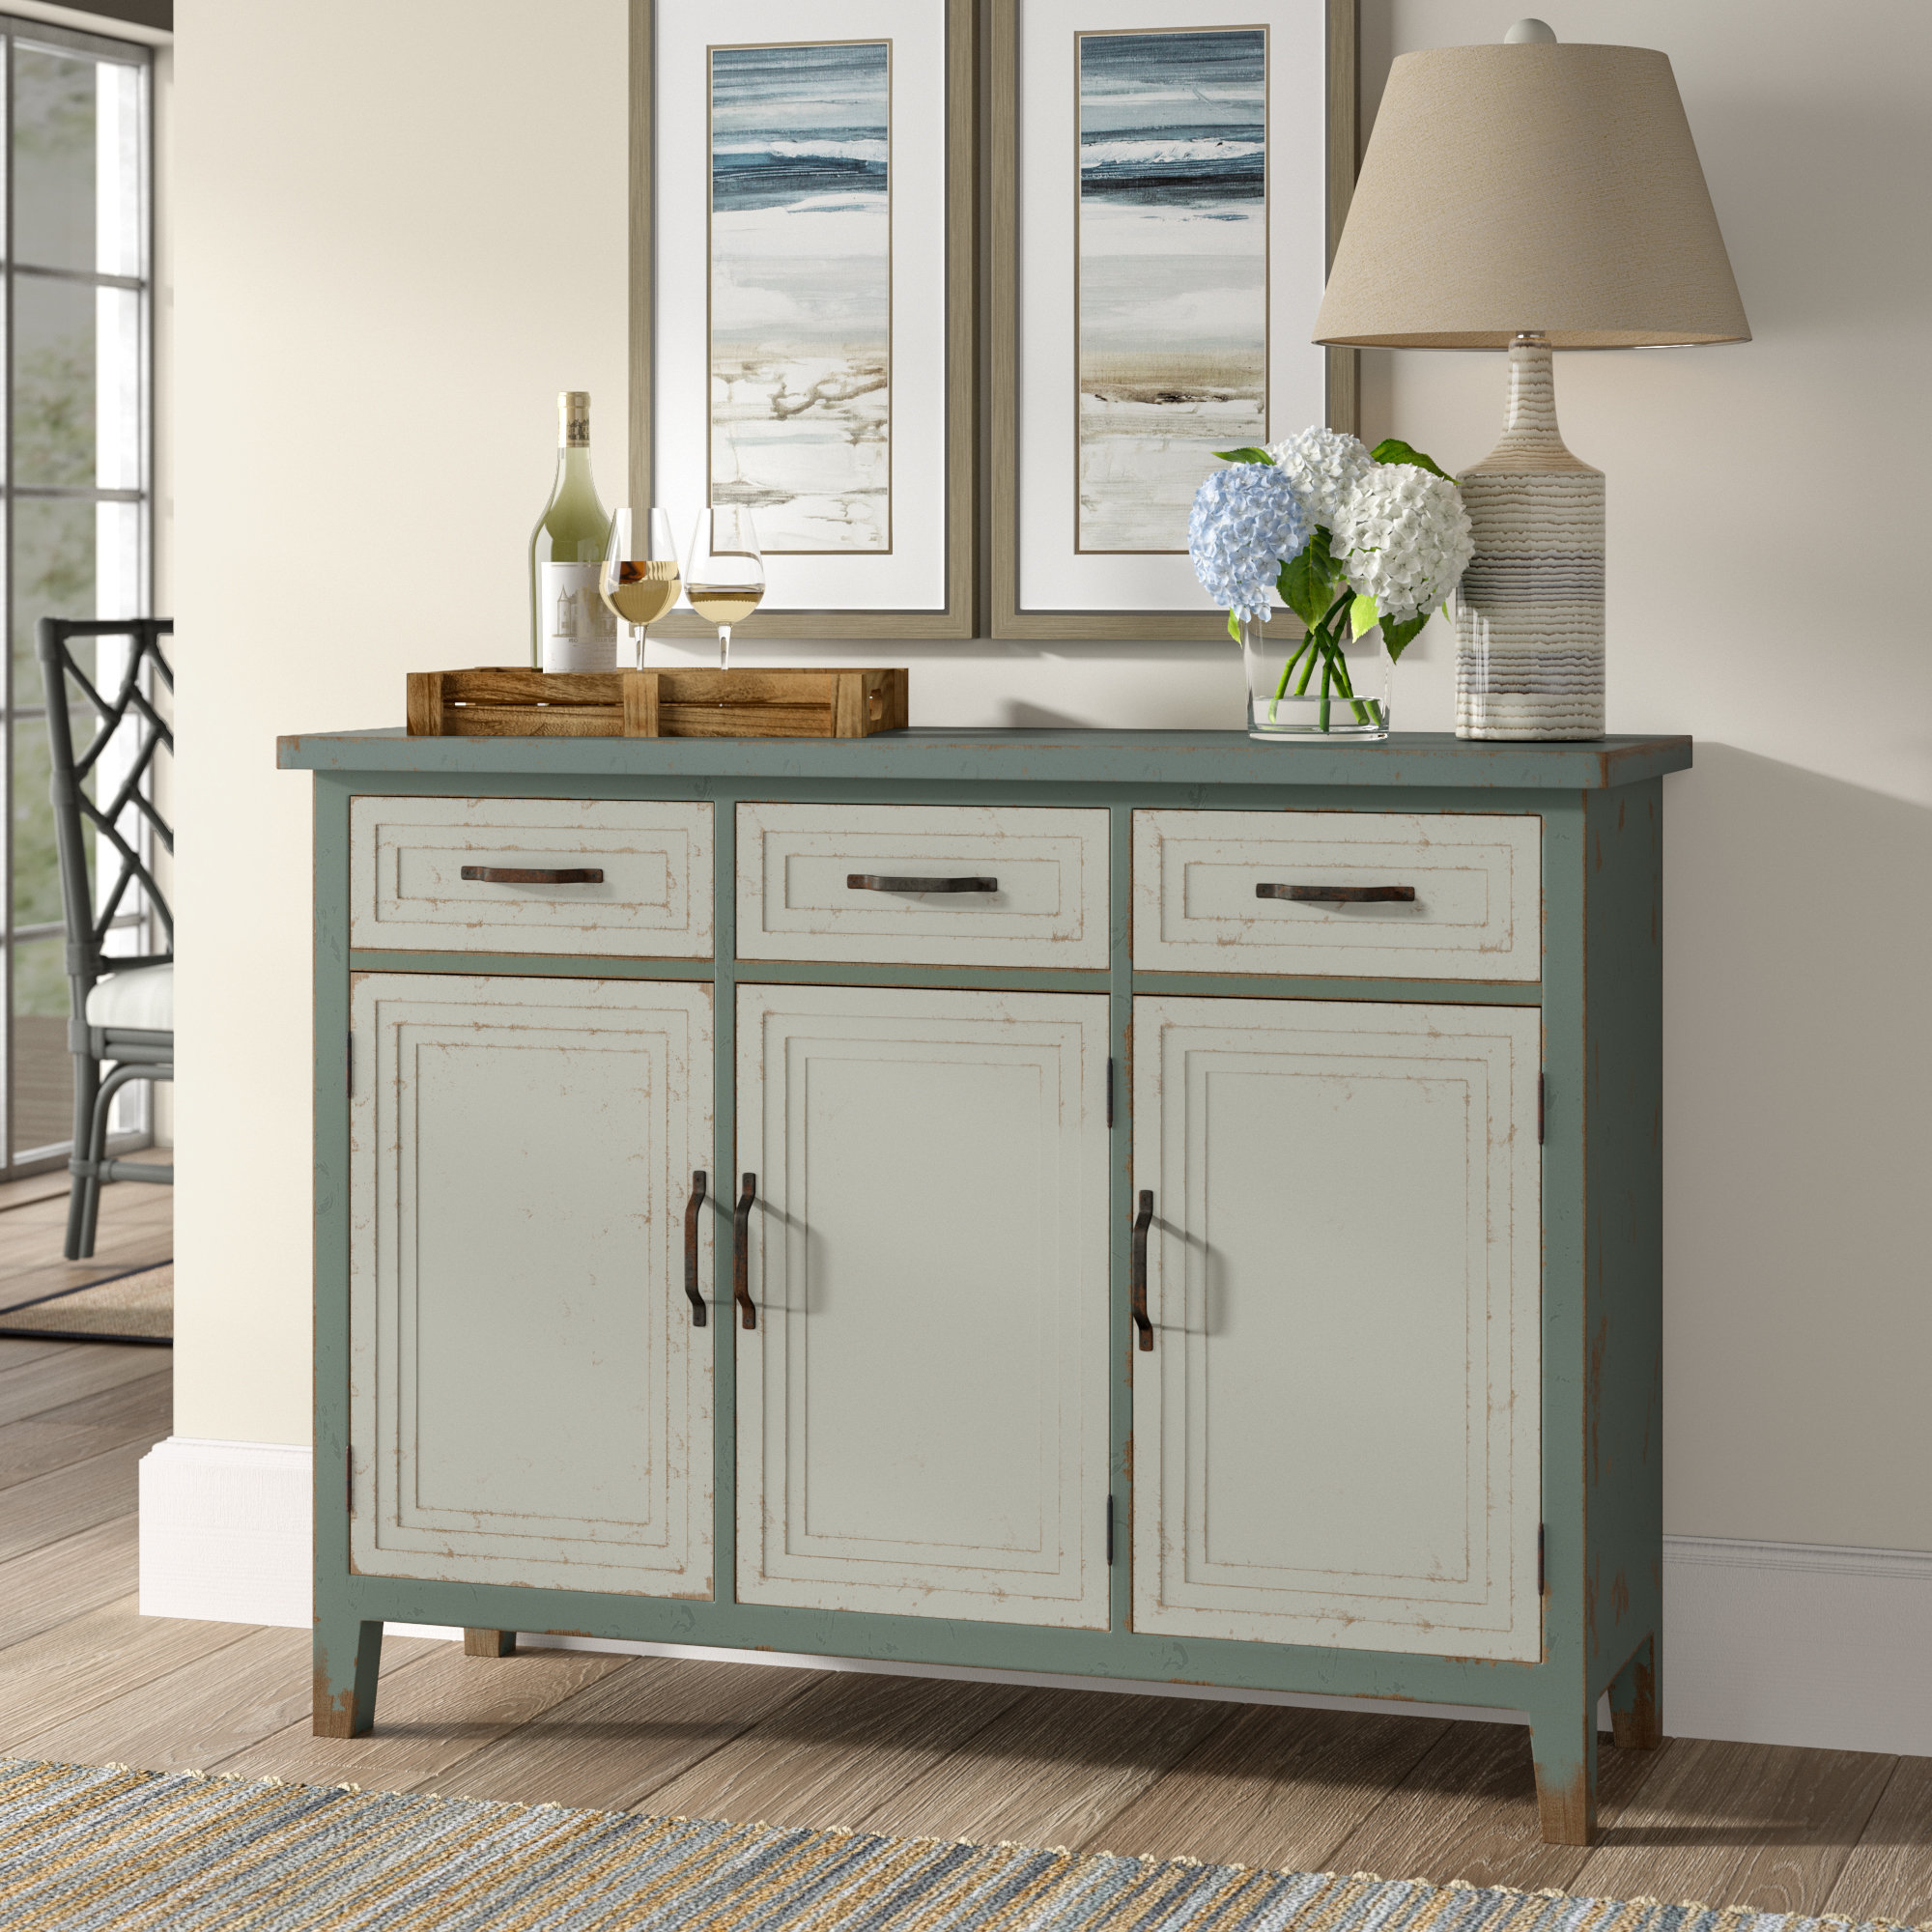 3 Drawer Credenza | Wayfair For Giulia 3 Drawer Credenzas (Gallery 4 of 20)